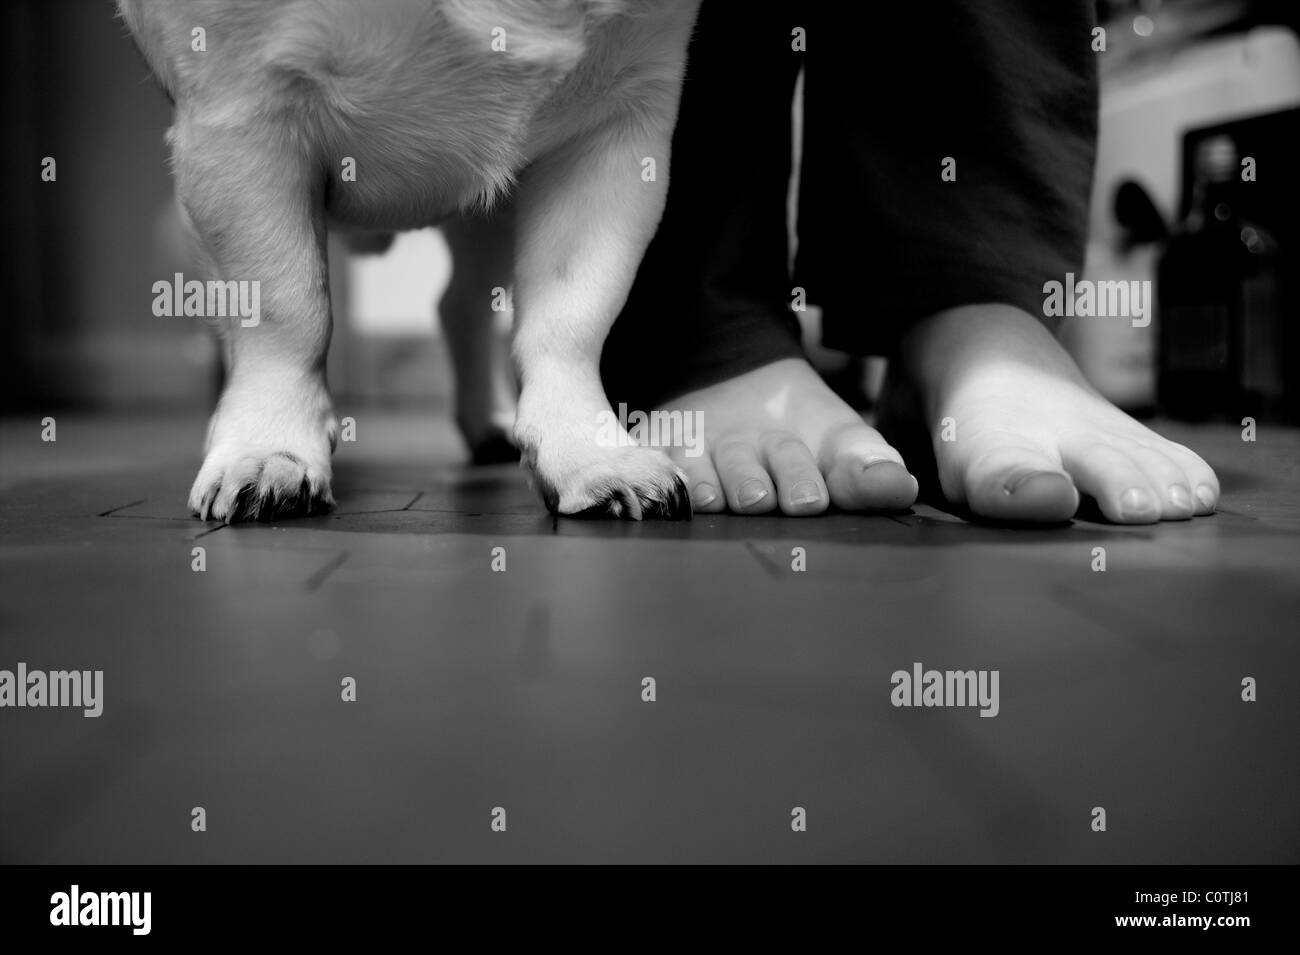 Paws And Feet Jack Russell Paws And A Little Boys Feet Stock Photo